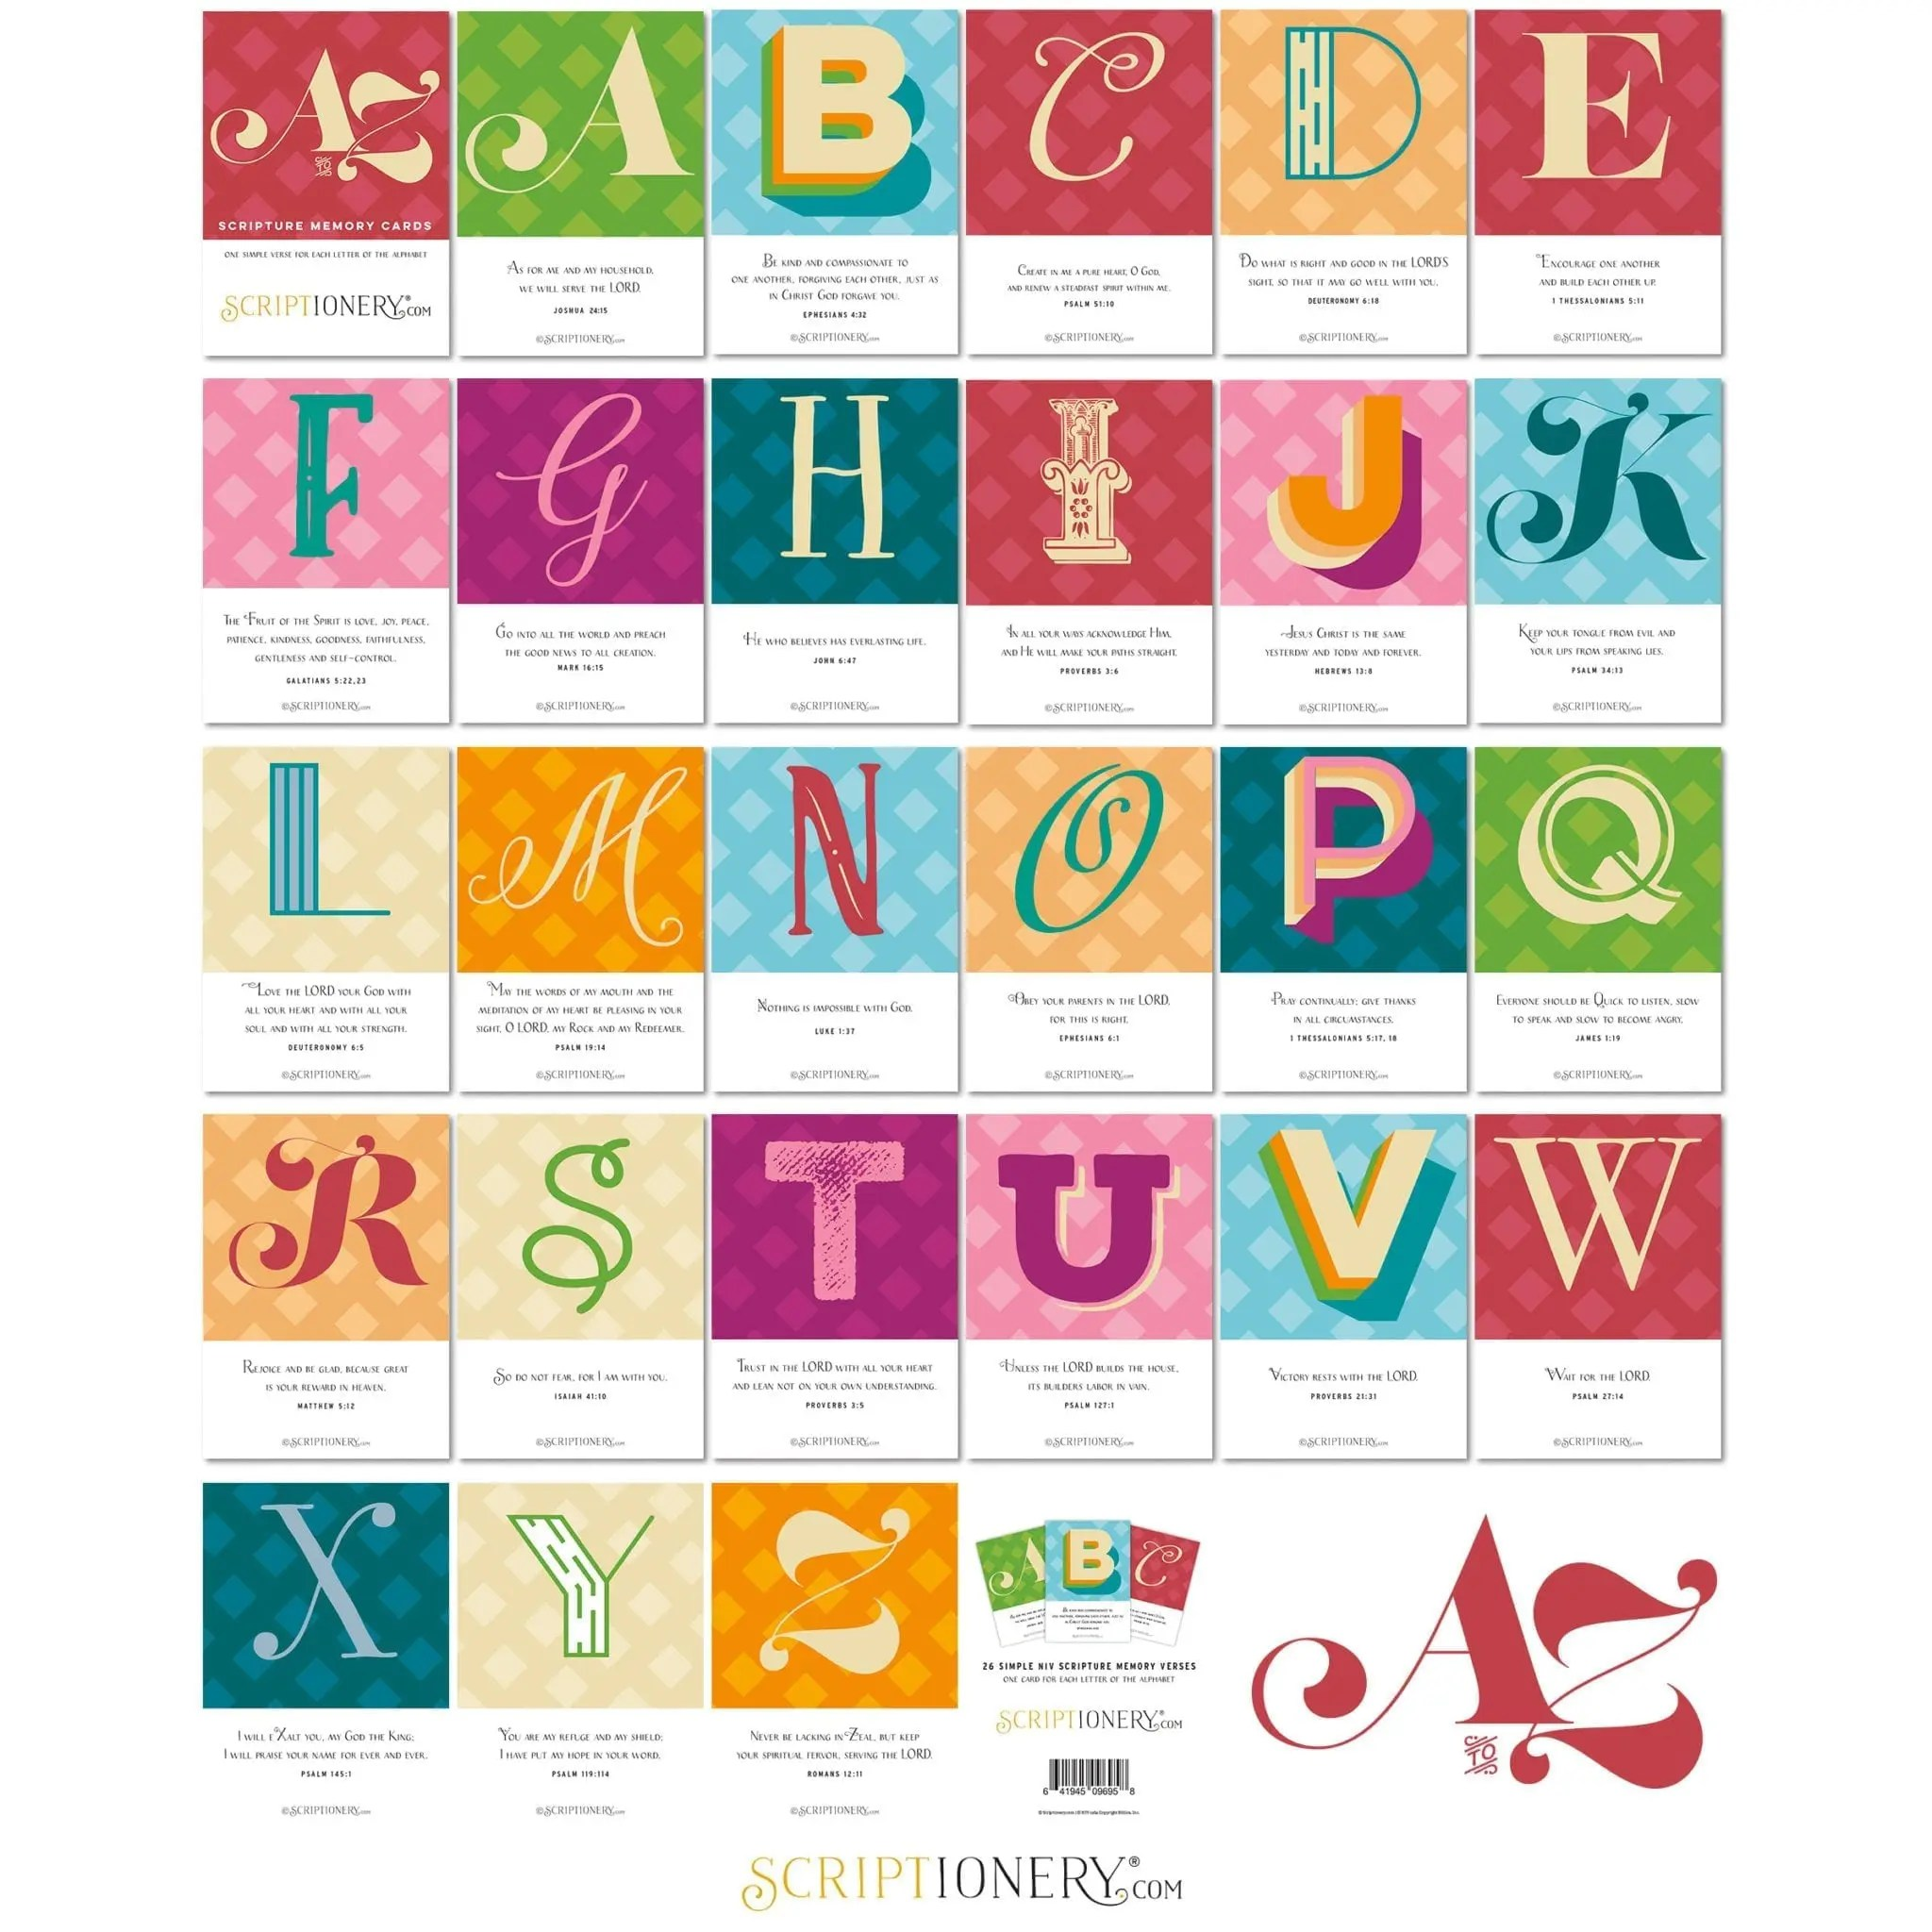 Scriptionery A to Z ABC Scripture Cards Grid View